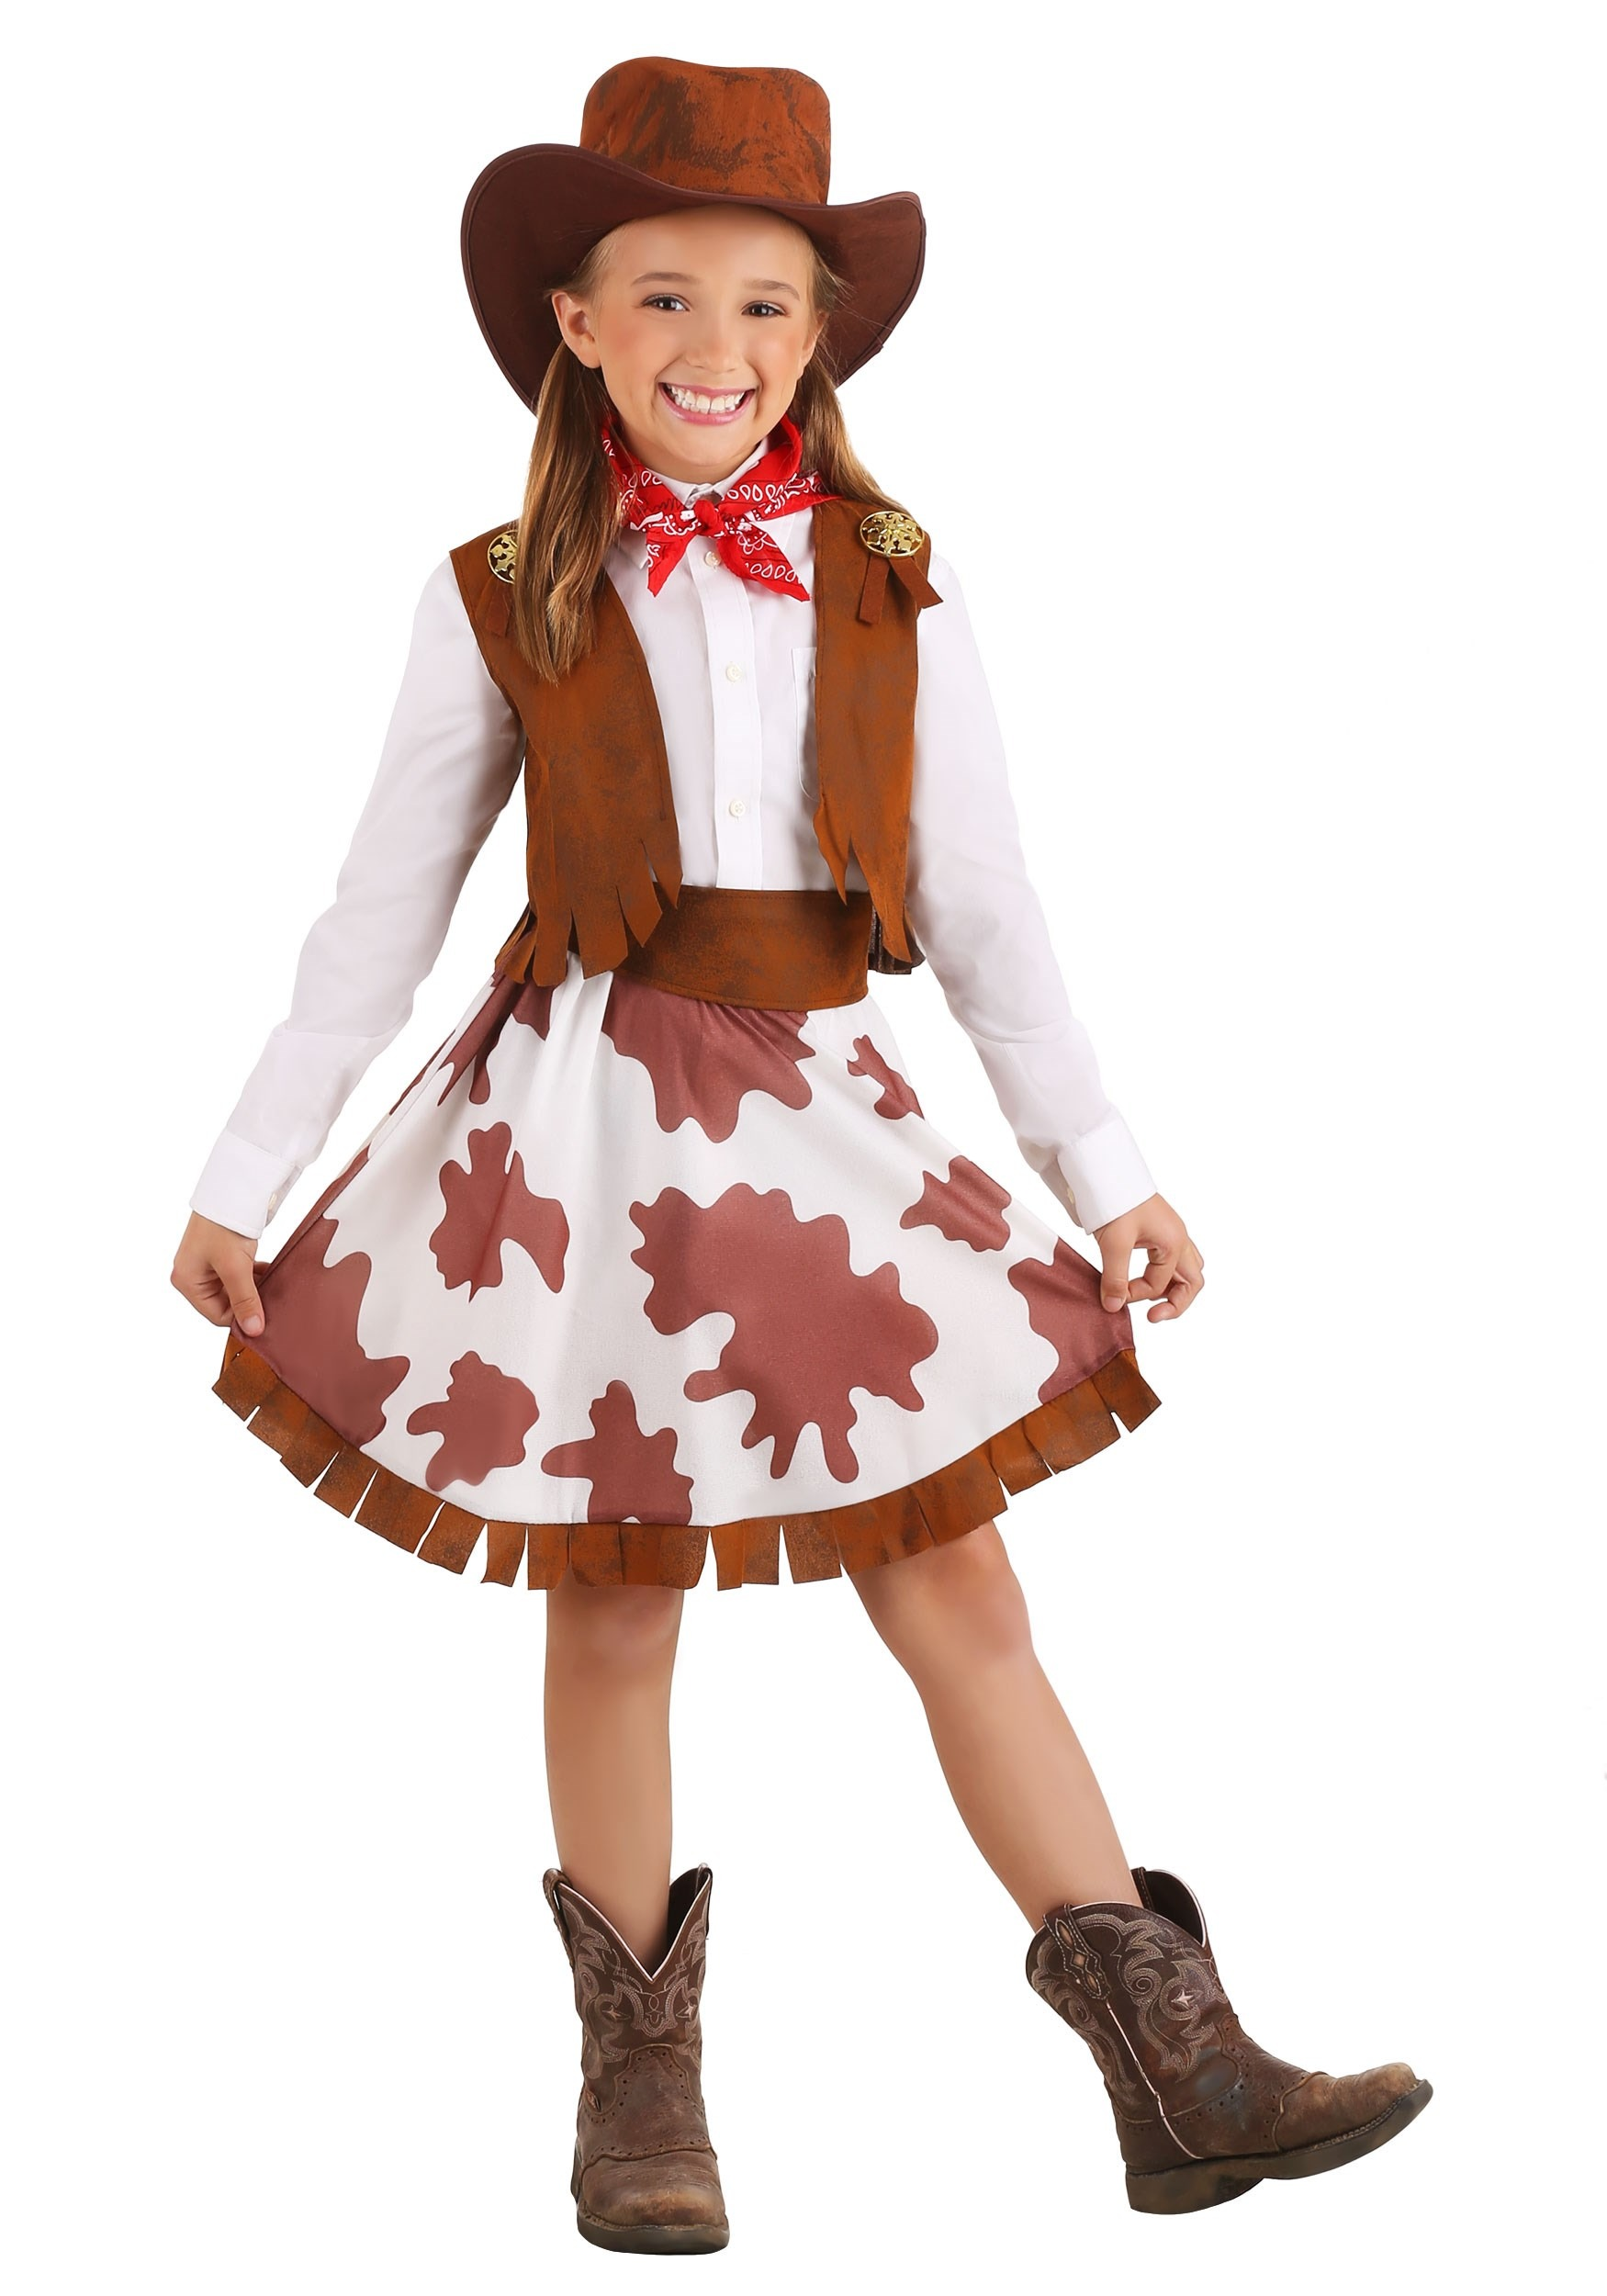 Cowboy costume for girls - photo#10